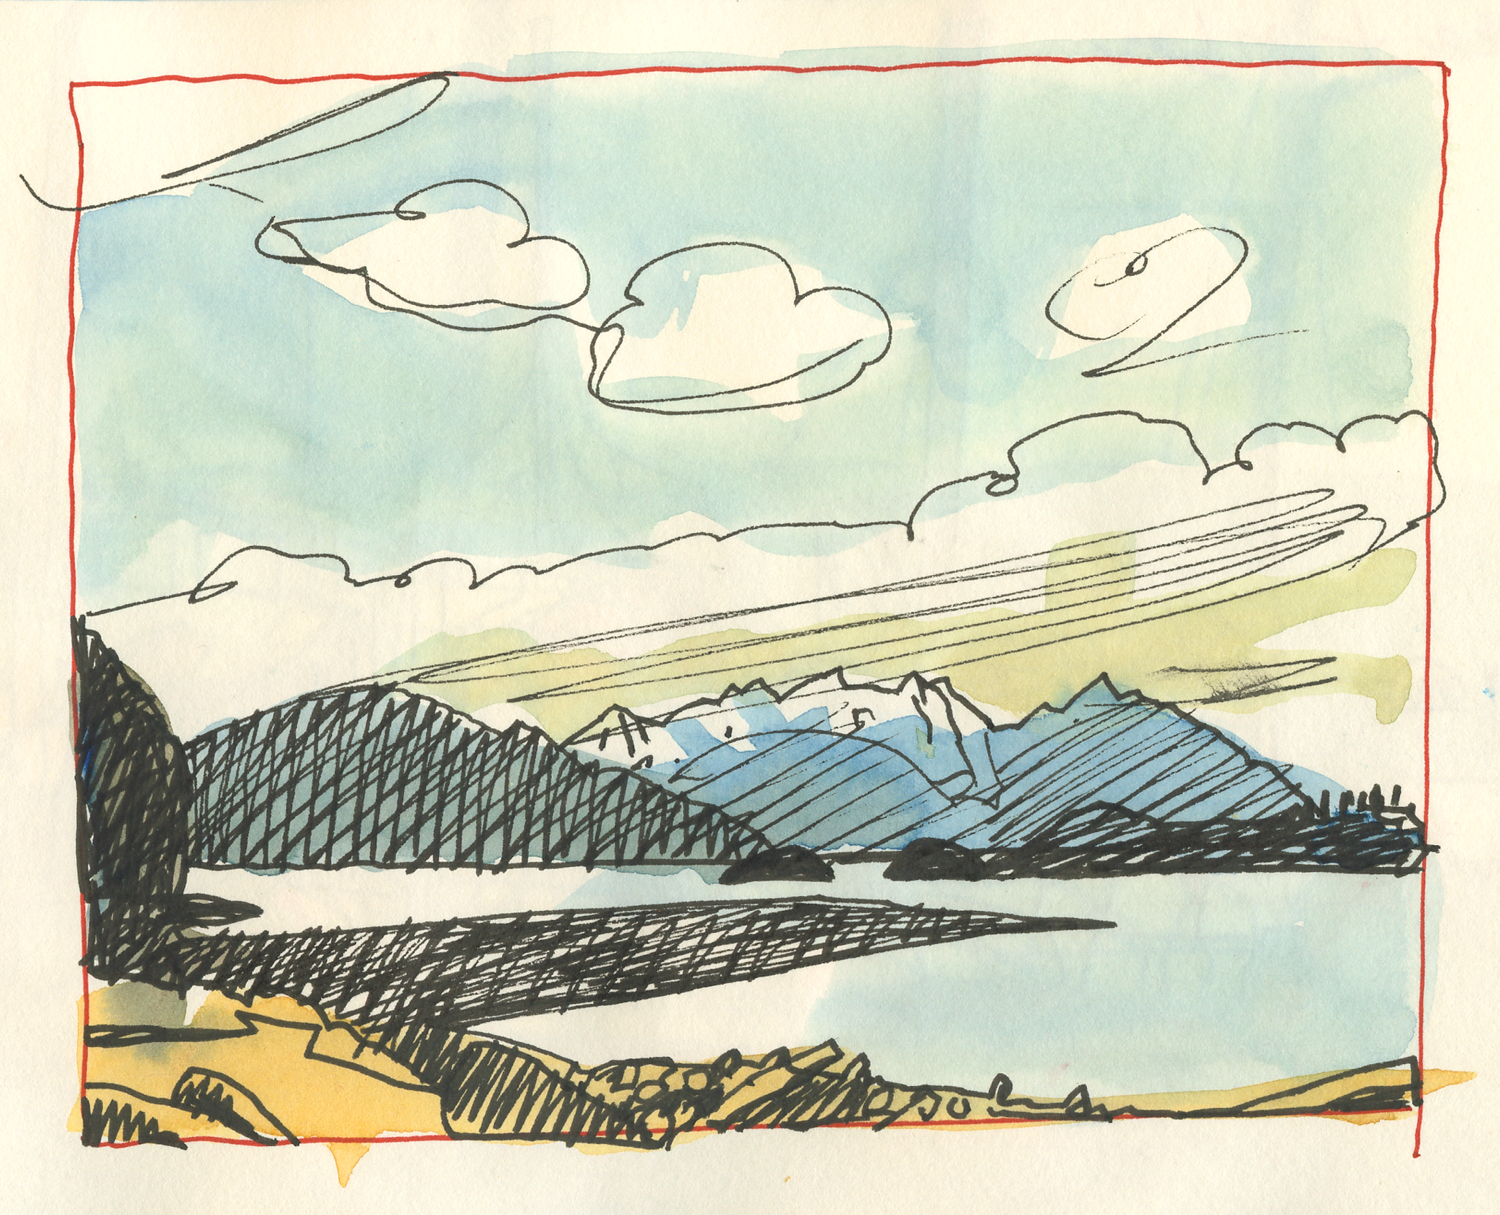 Alaska_sketchbook2_edited-1.jpg